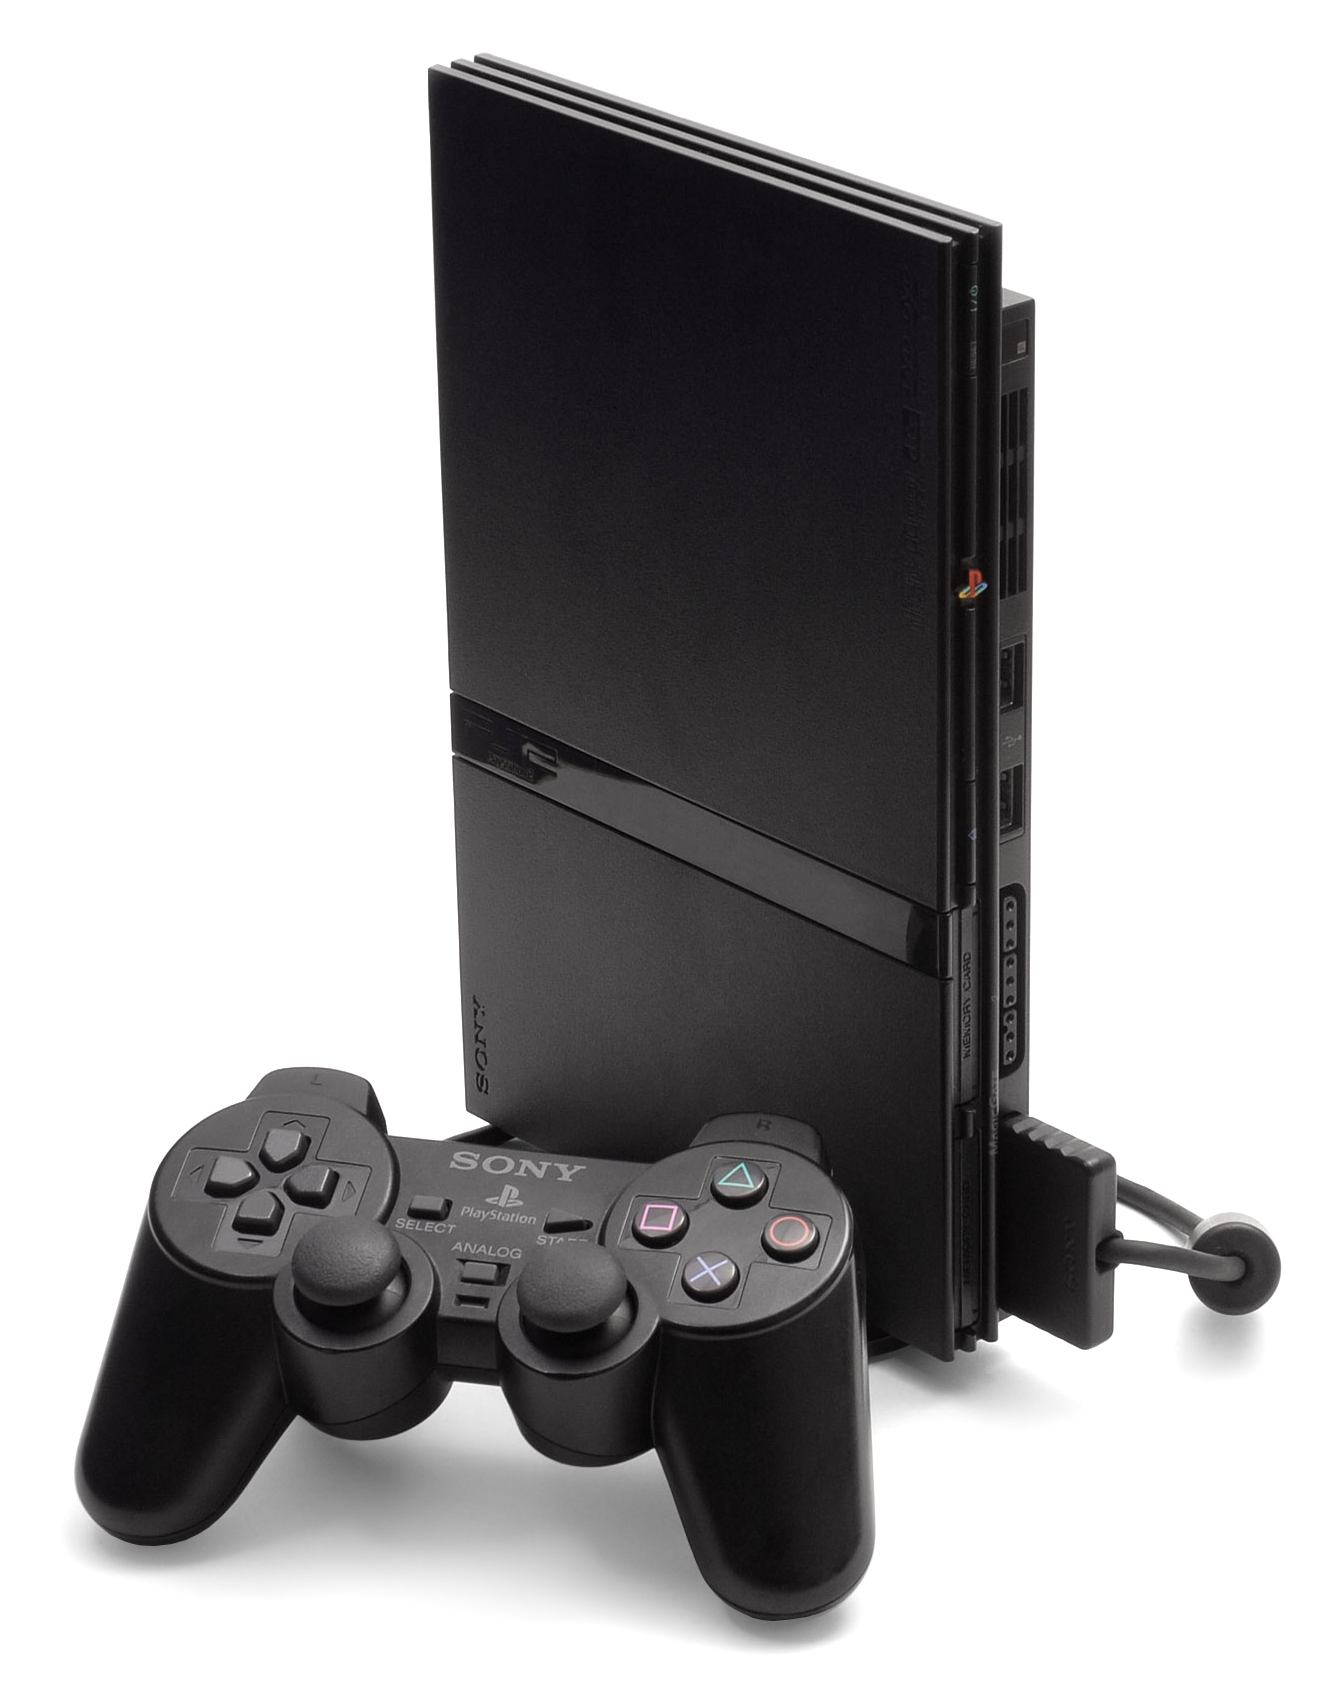 sony playstation 2 slim. file:ps2-slim-console.png sony playstation 2 slim h